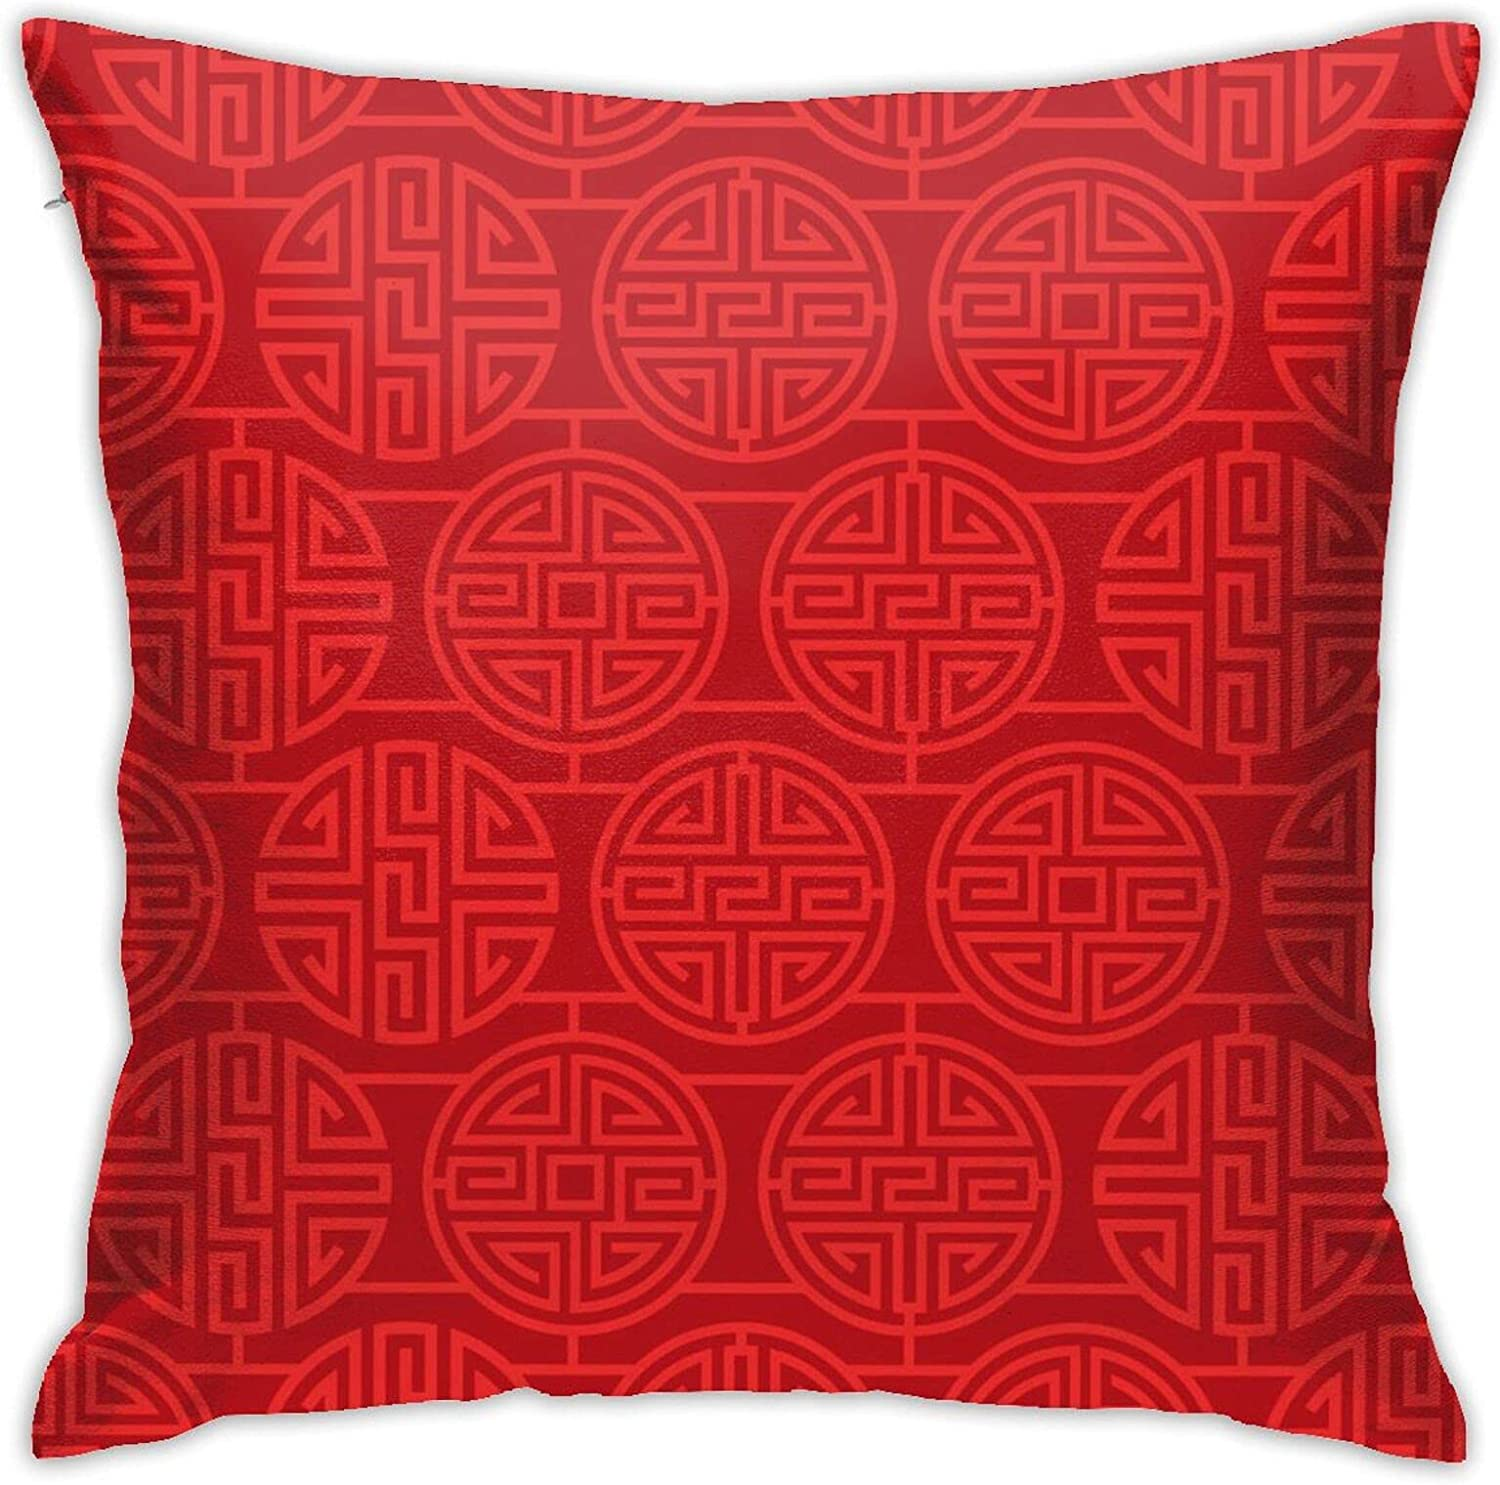 We OFFer at cheap prices Red Retro Pattern 18 X Inches Bed Couch Pillo Design Cute and Year-end gift